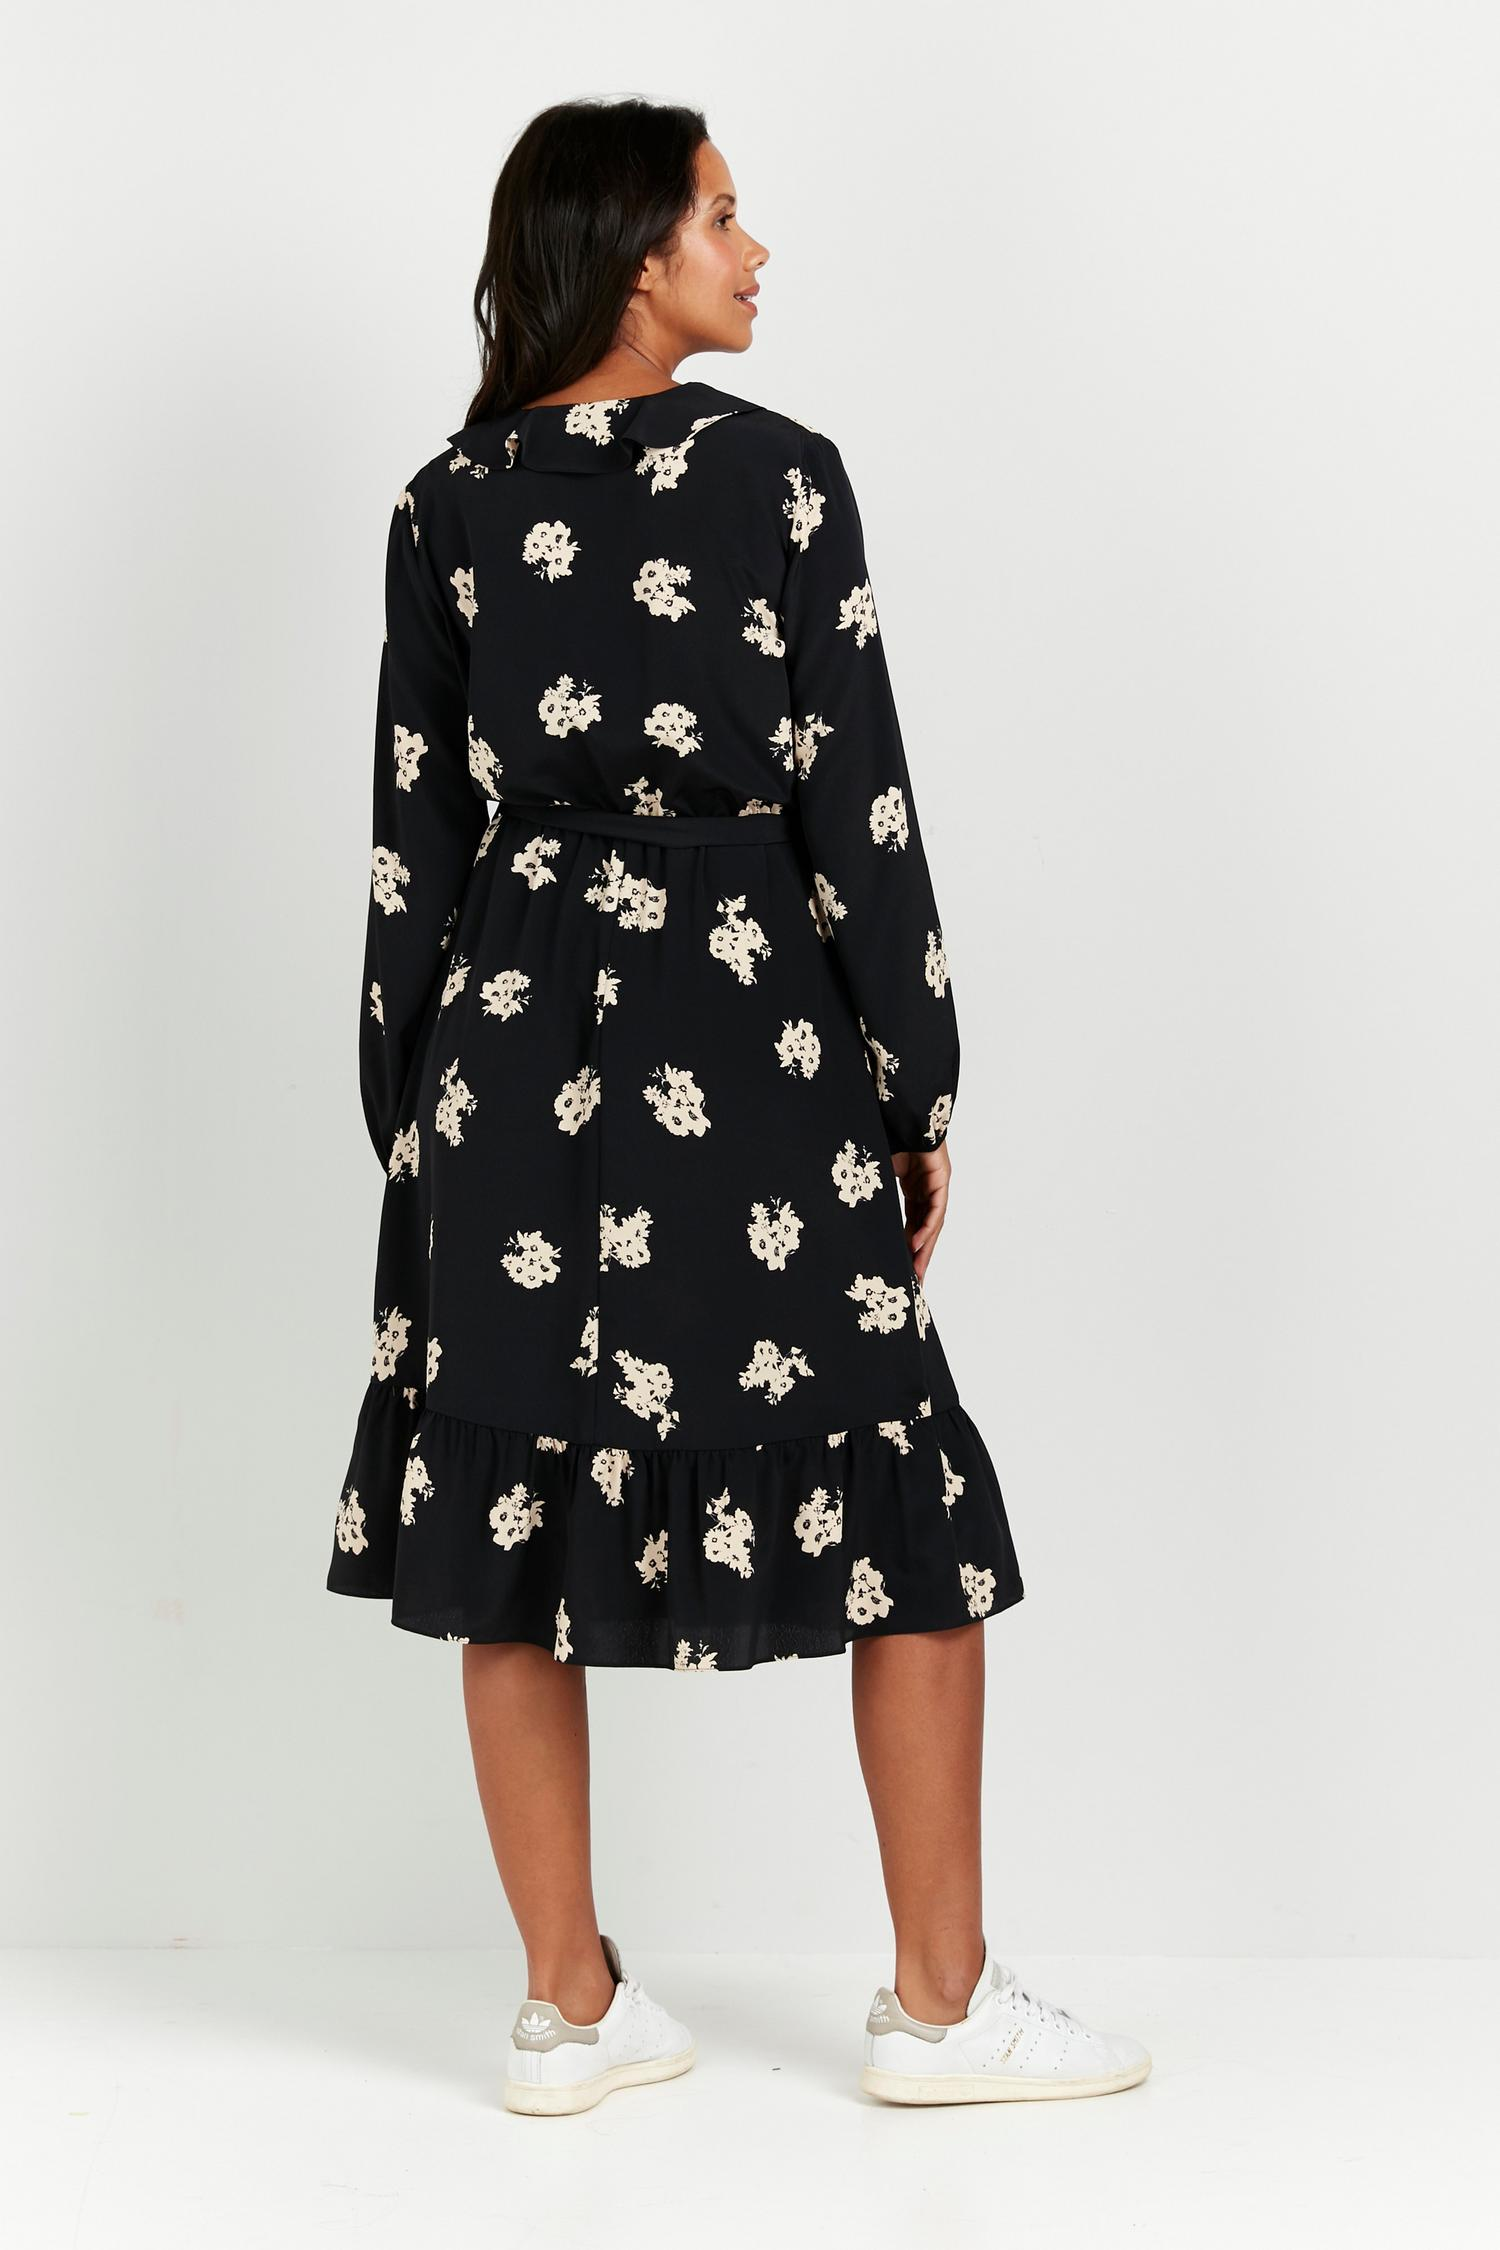 165 Black Floral Print Ruffle Front Midi Dress image number 2